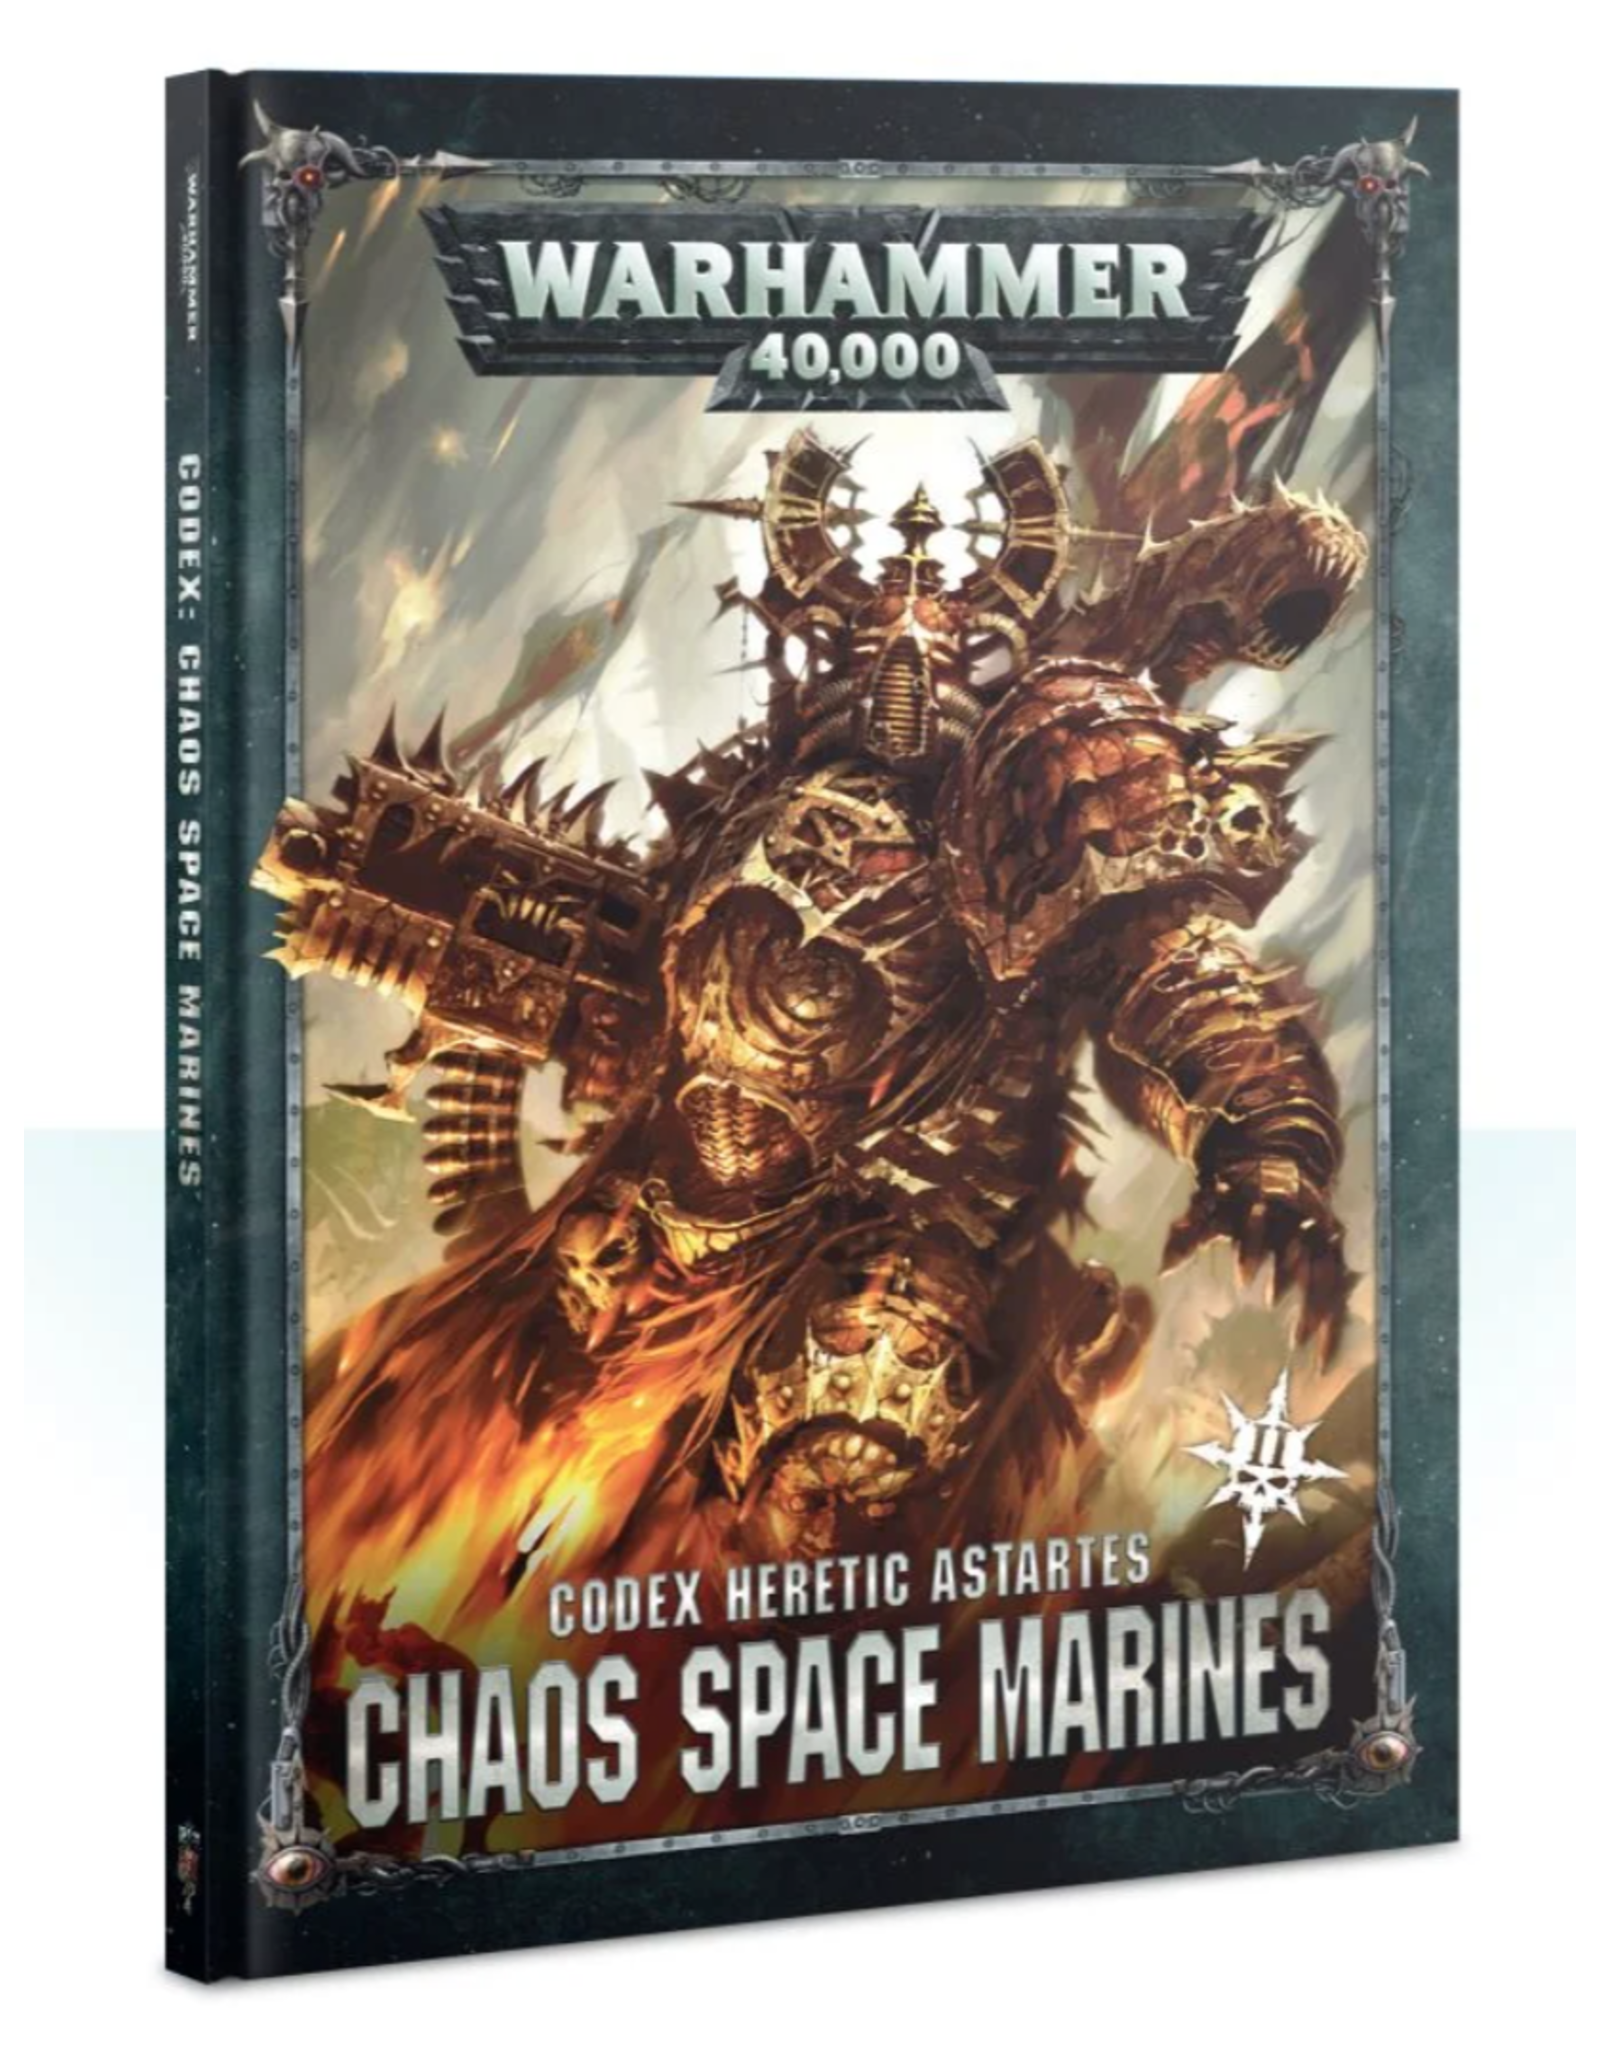 Warhammer 40K Chaos Space Marines 2 Codex